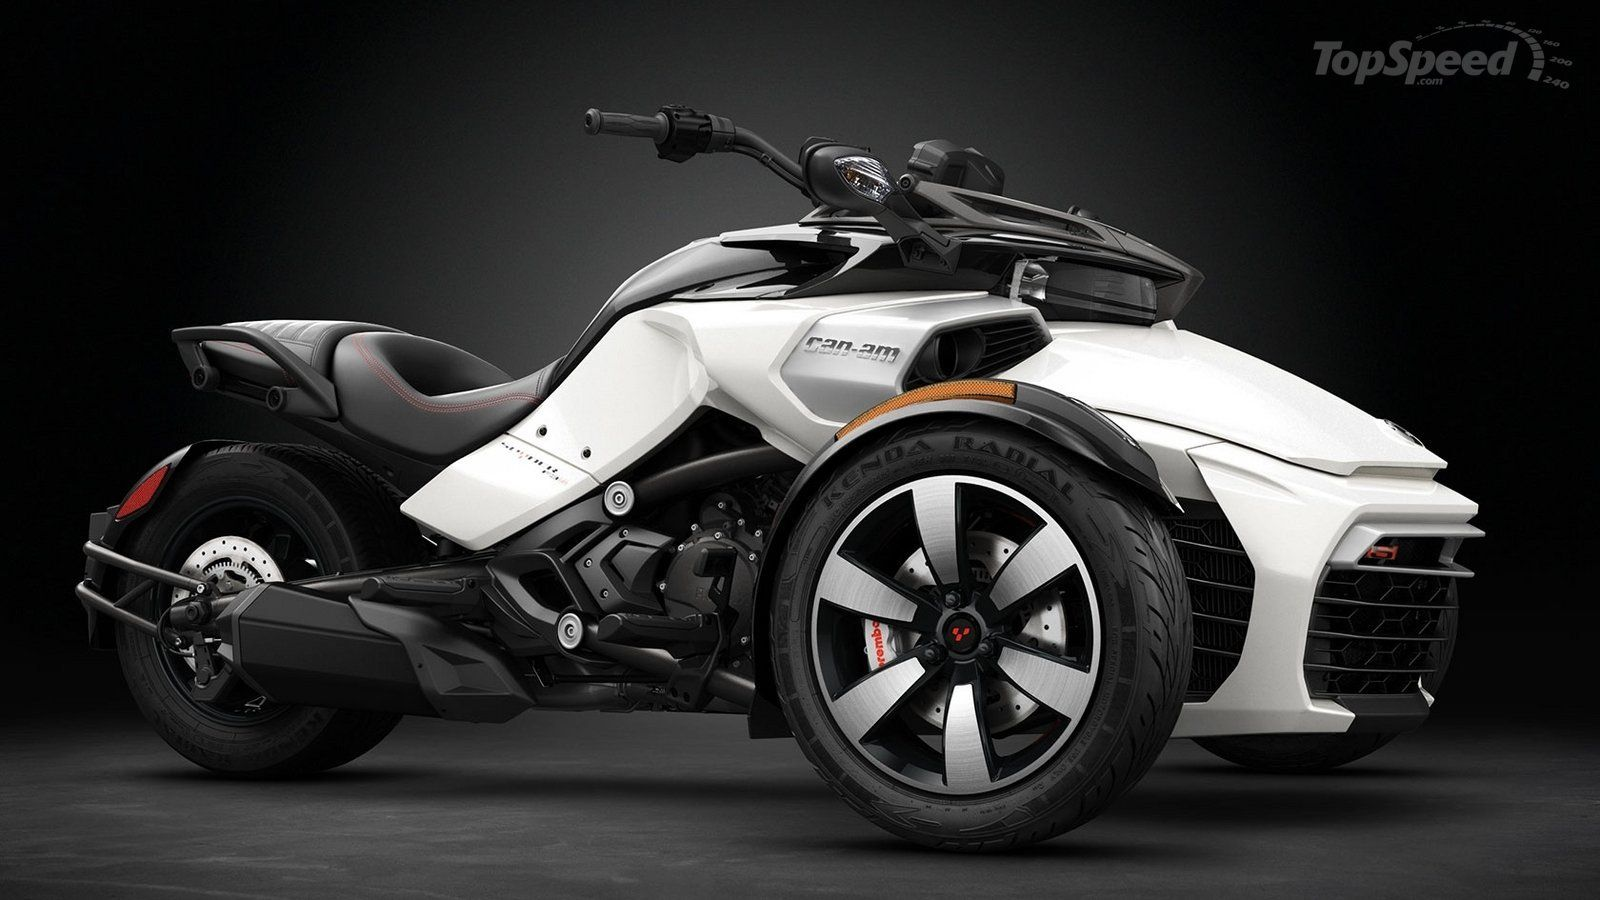 Custom can am spyder pictures i in resim sonucu